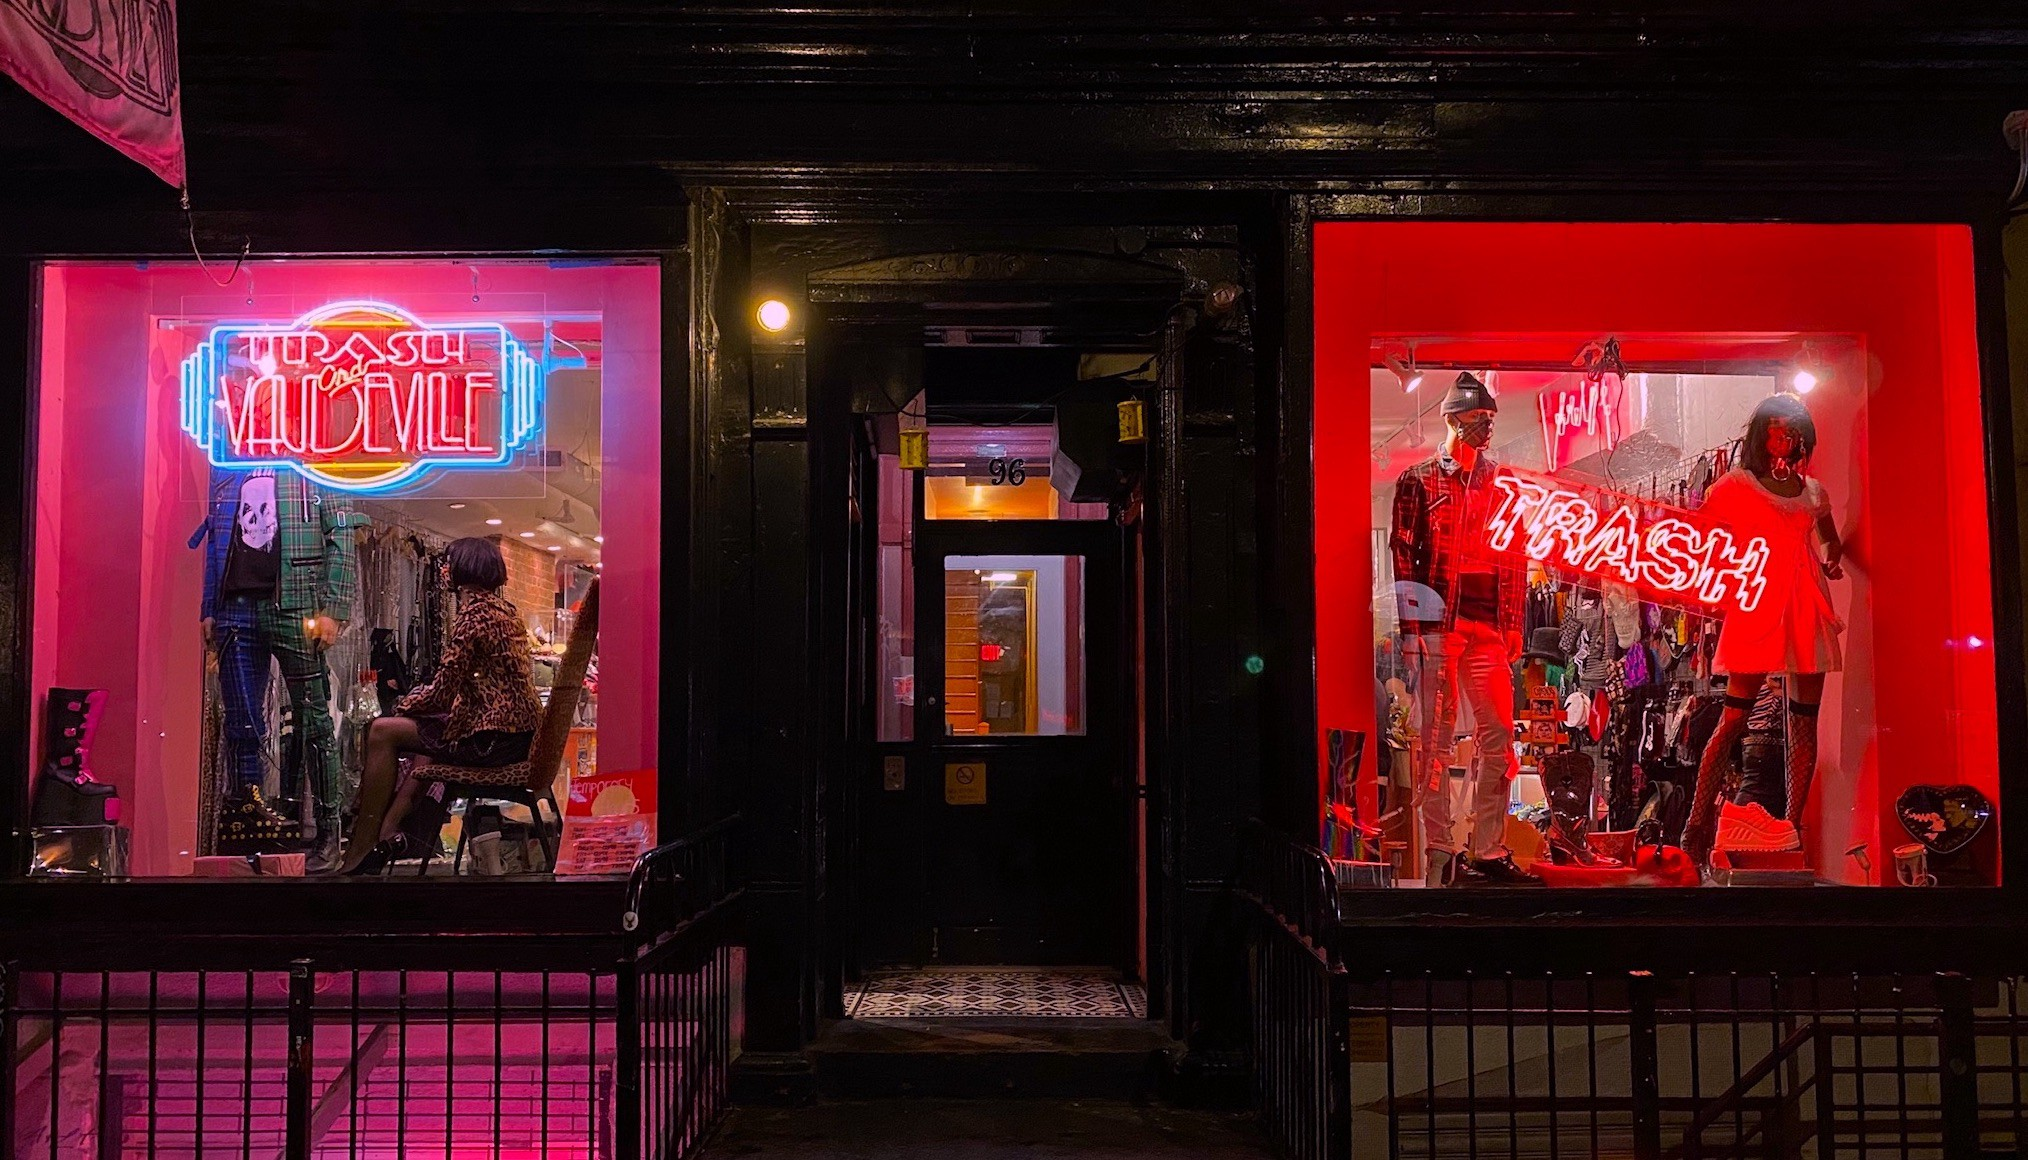 Neon lights and mannequins in the store window of Trash and Vaudeville, located in New York's East Village.